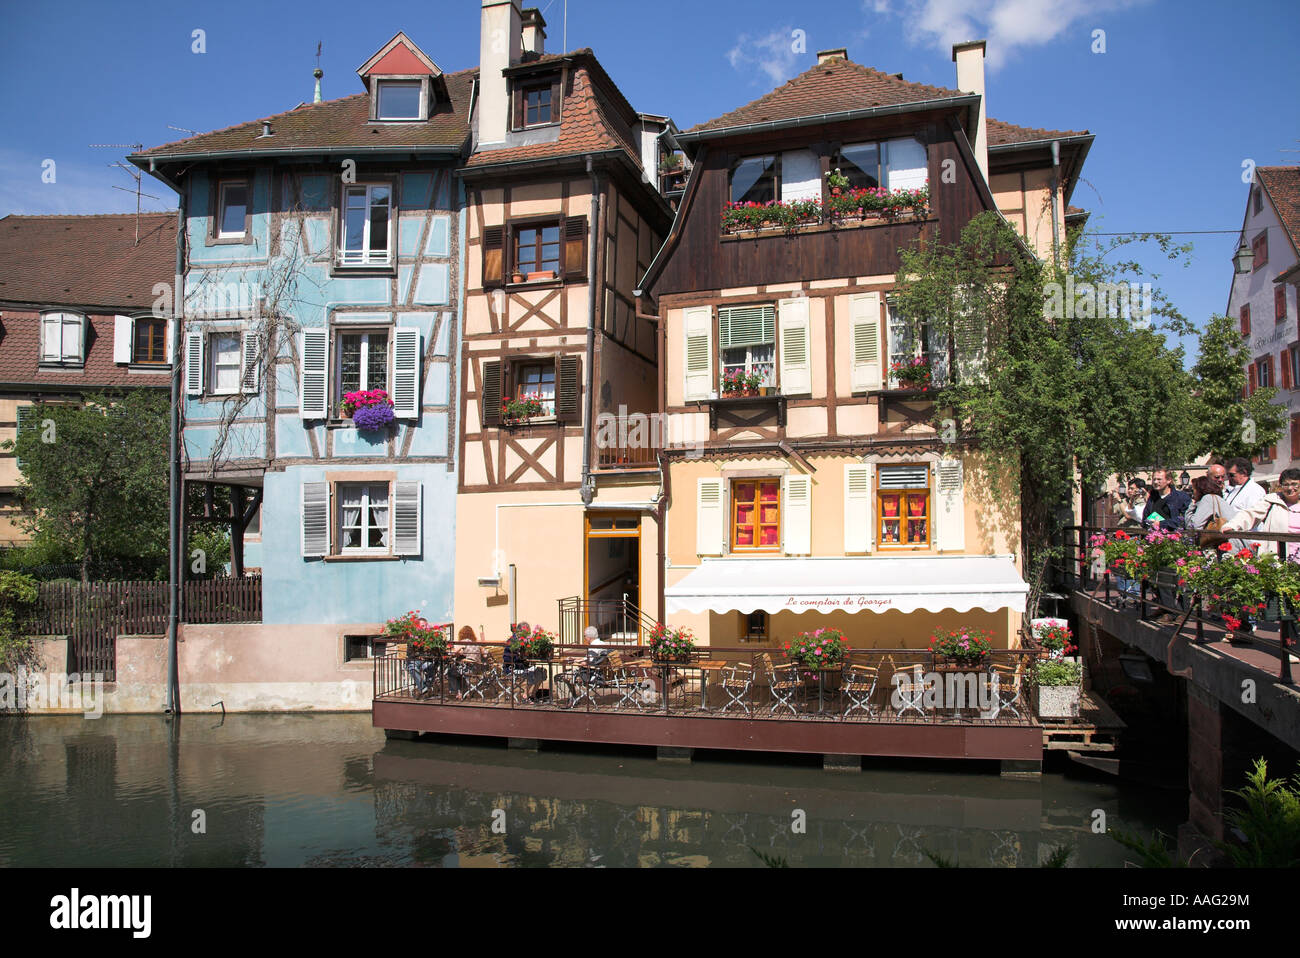 Open air cafe on platform over the river in the town of Colmar, Alsace, France. Stock Photo